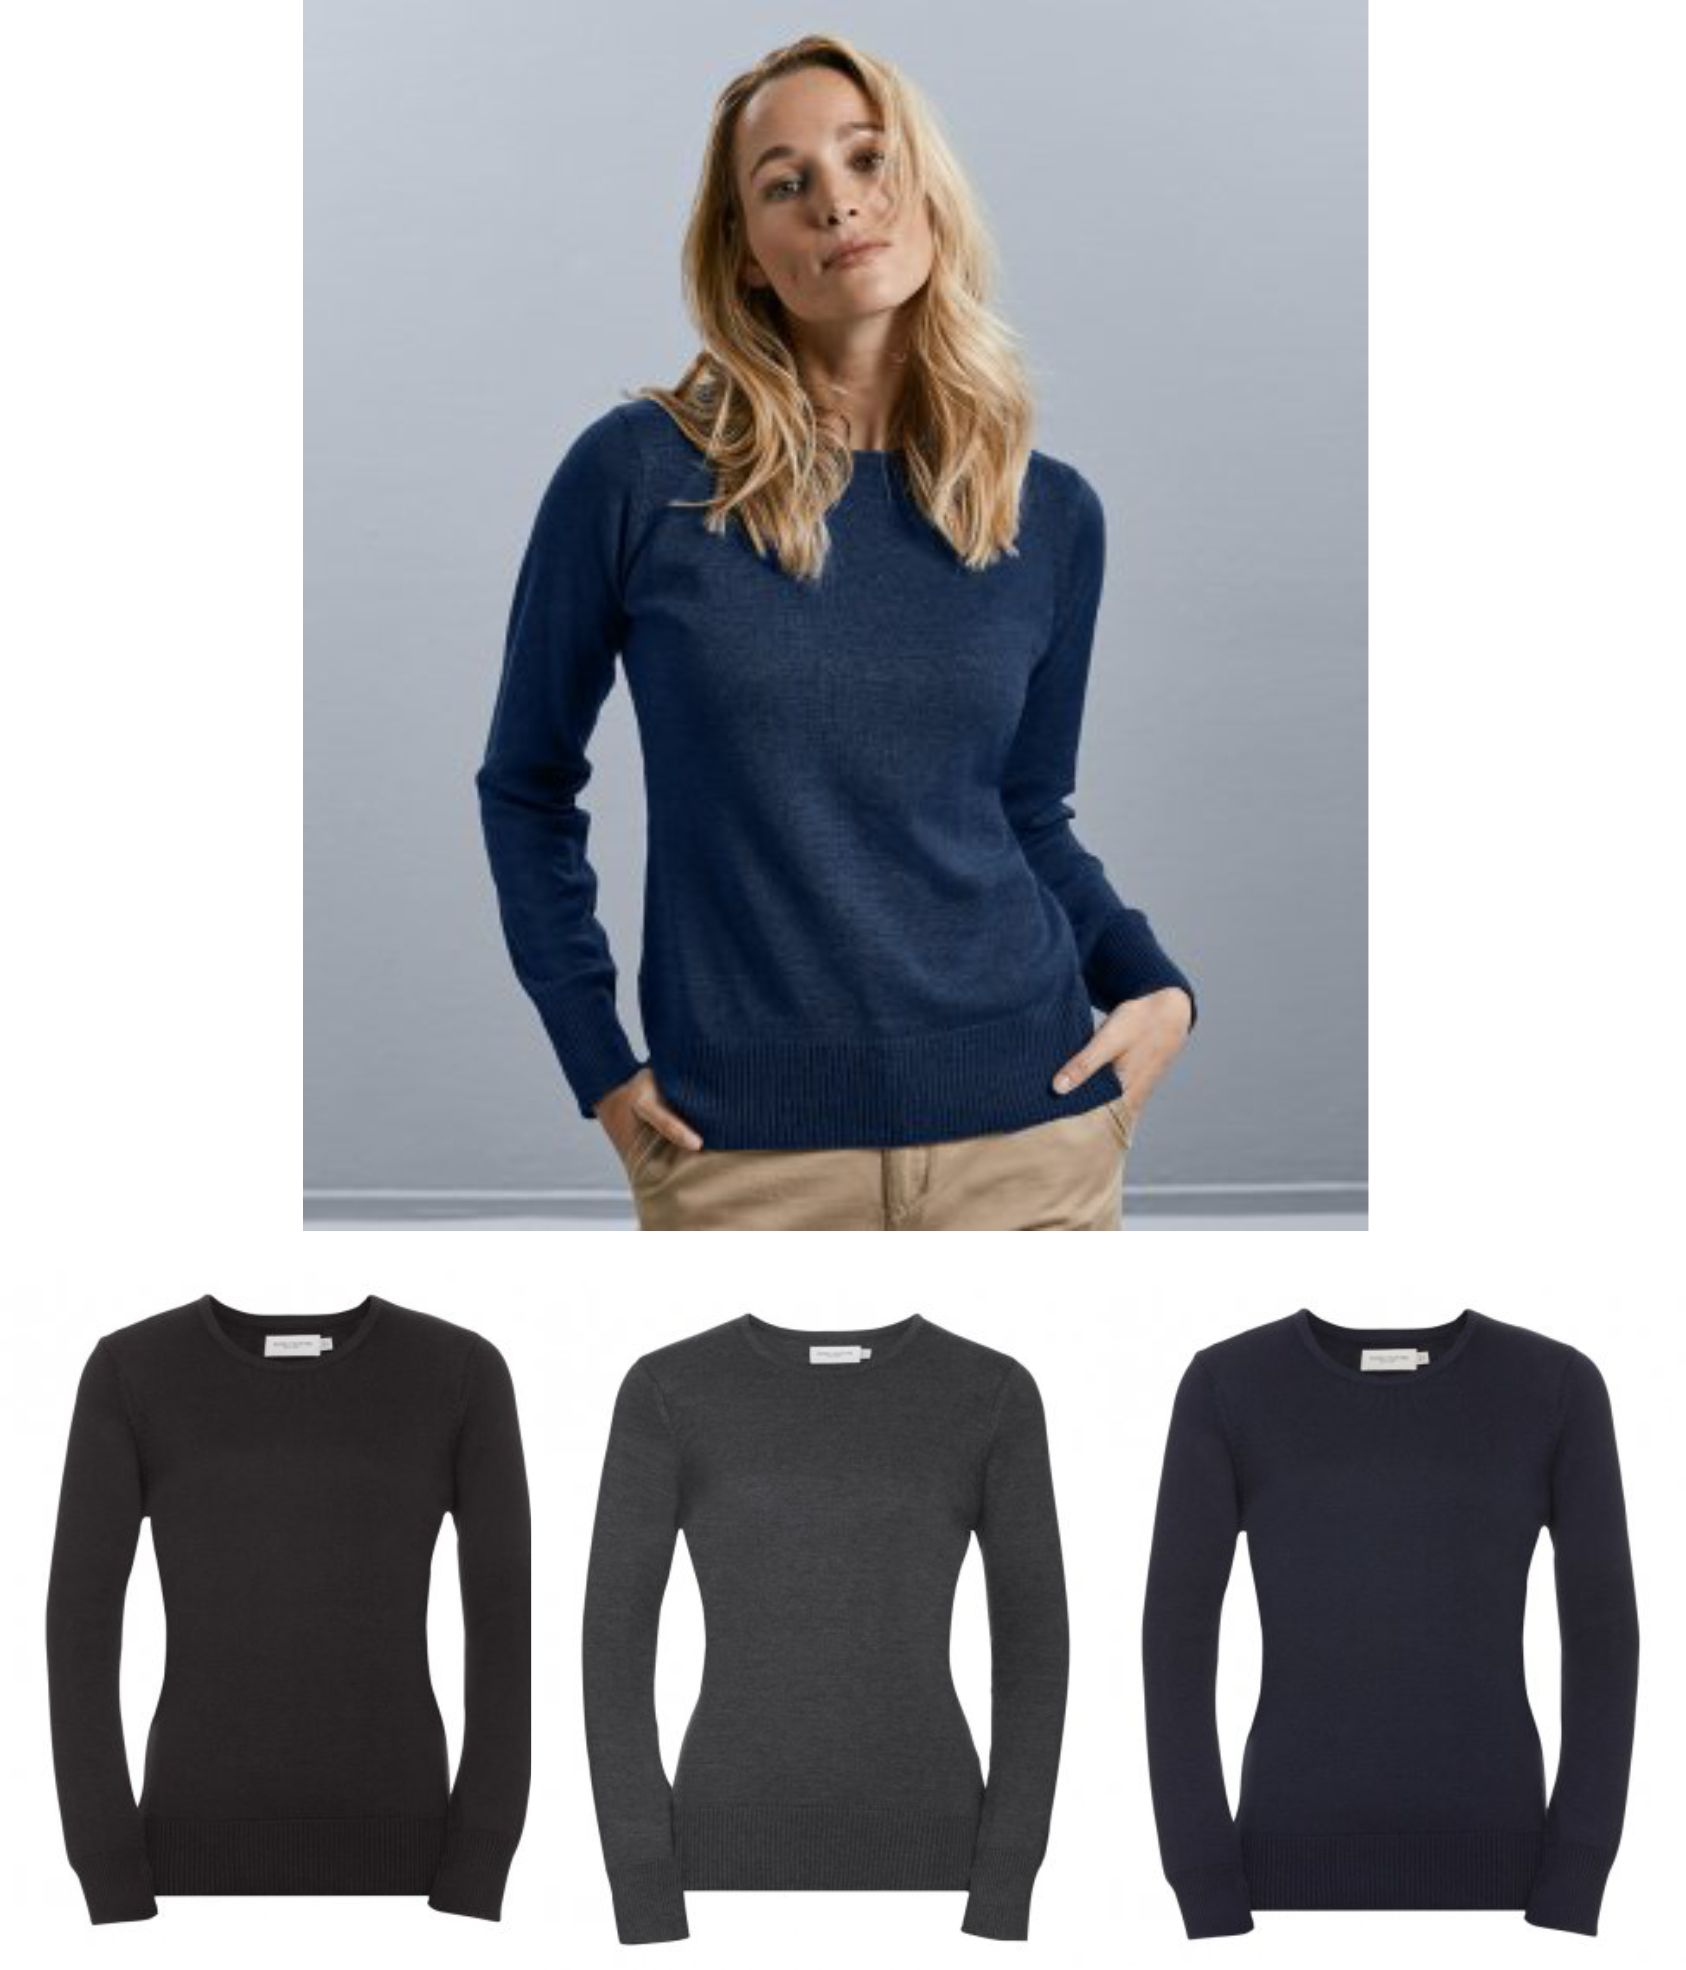 717F Russell Ladies Cotton Acrylic Crew Neck Sweater